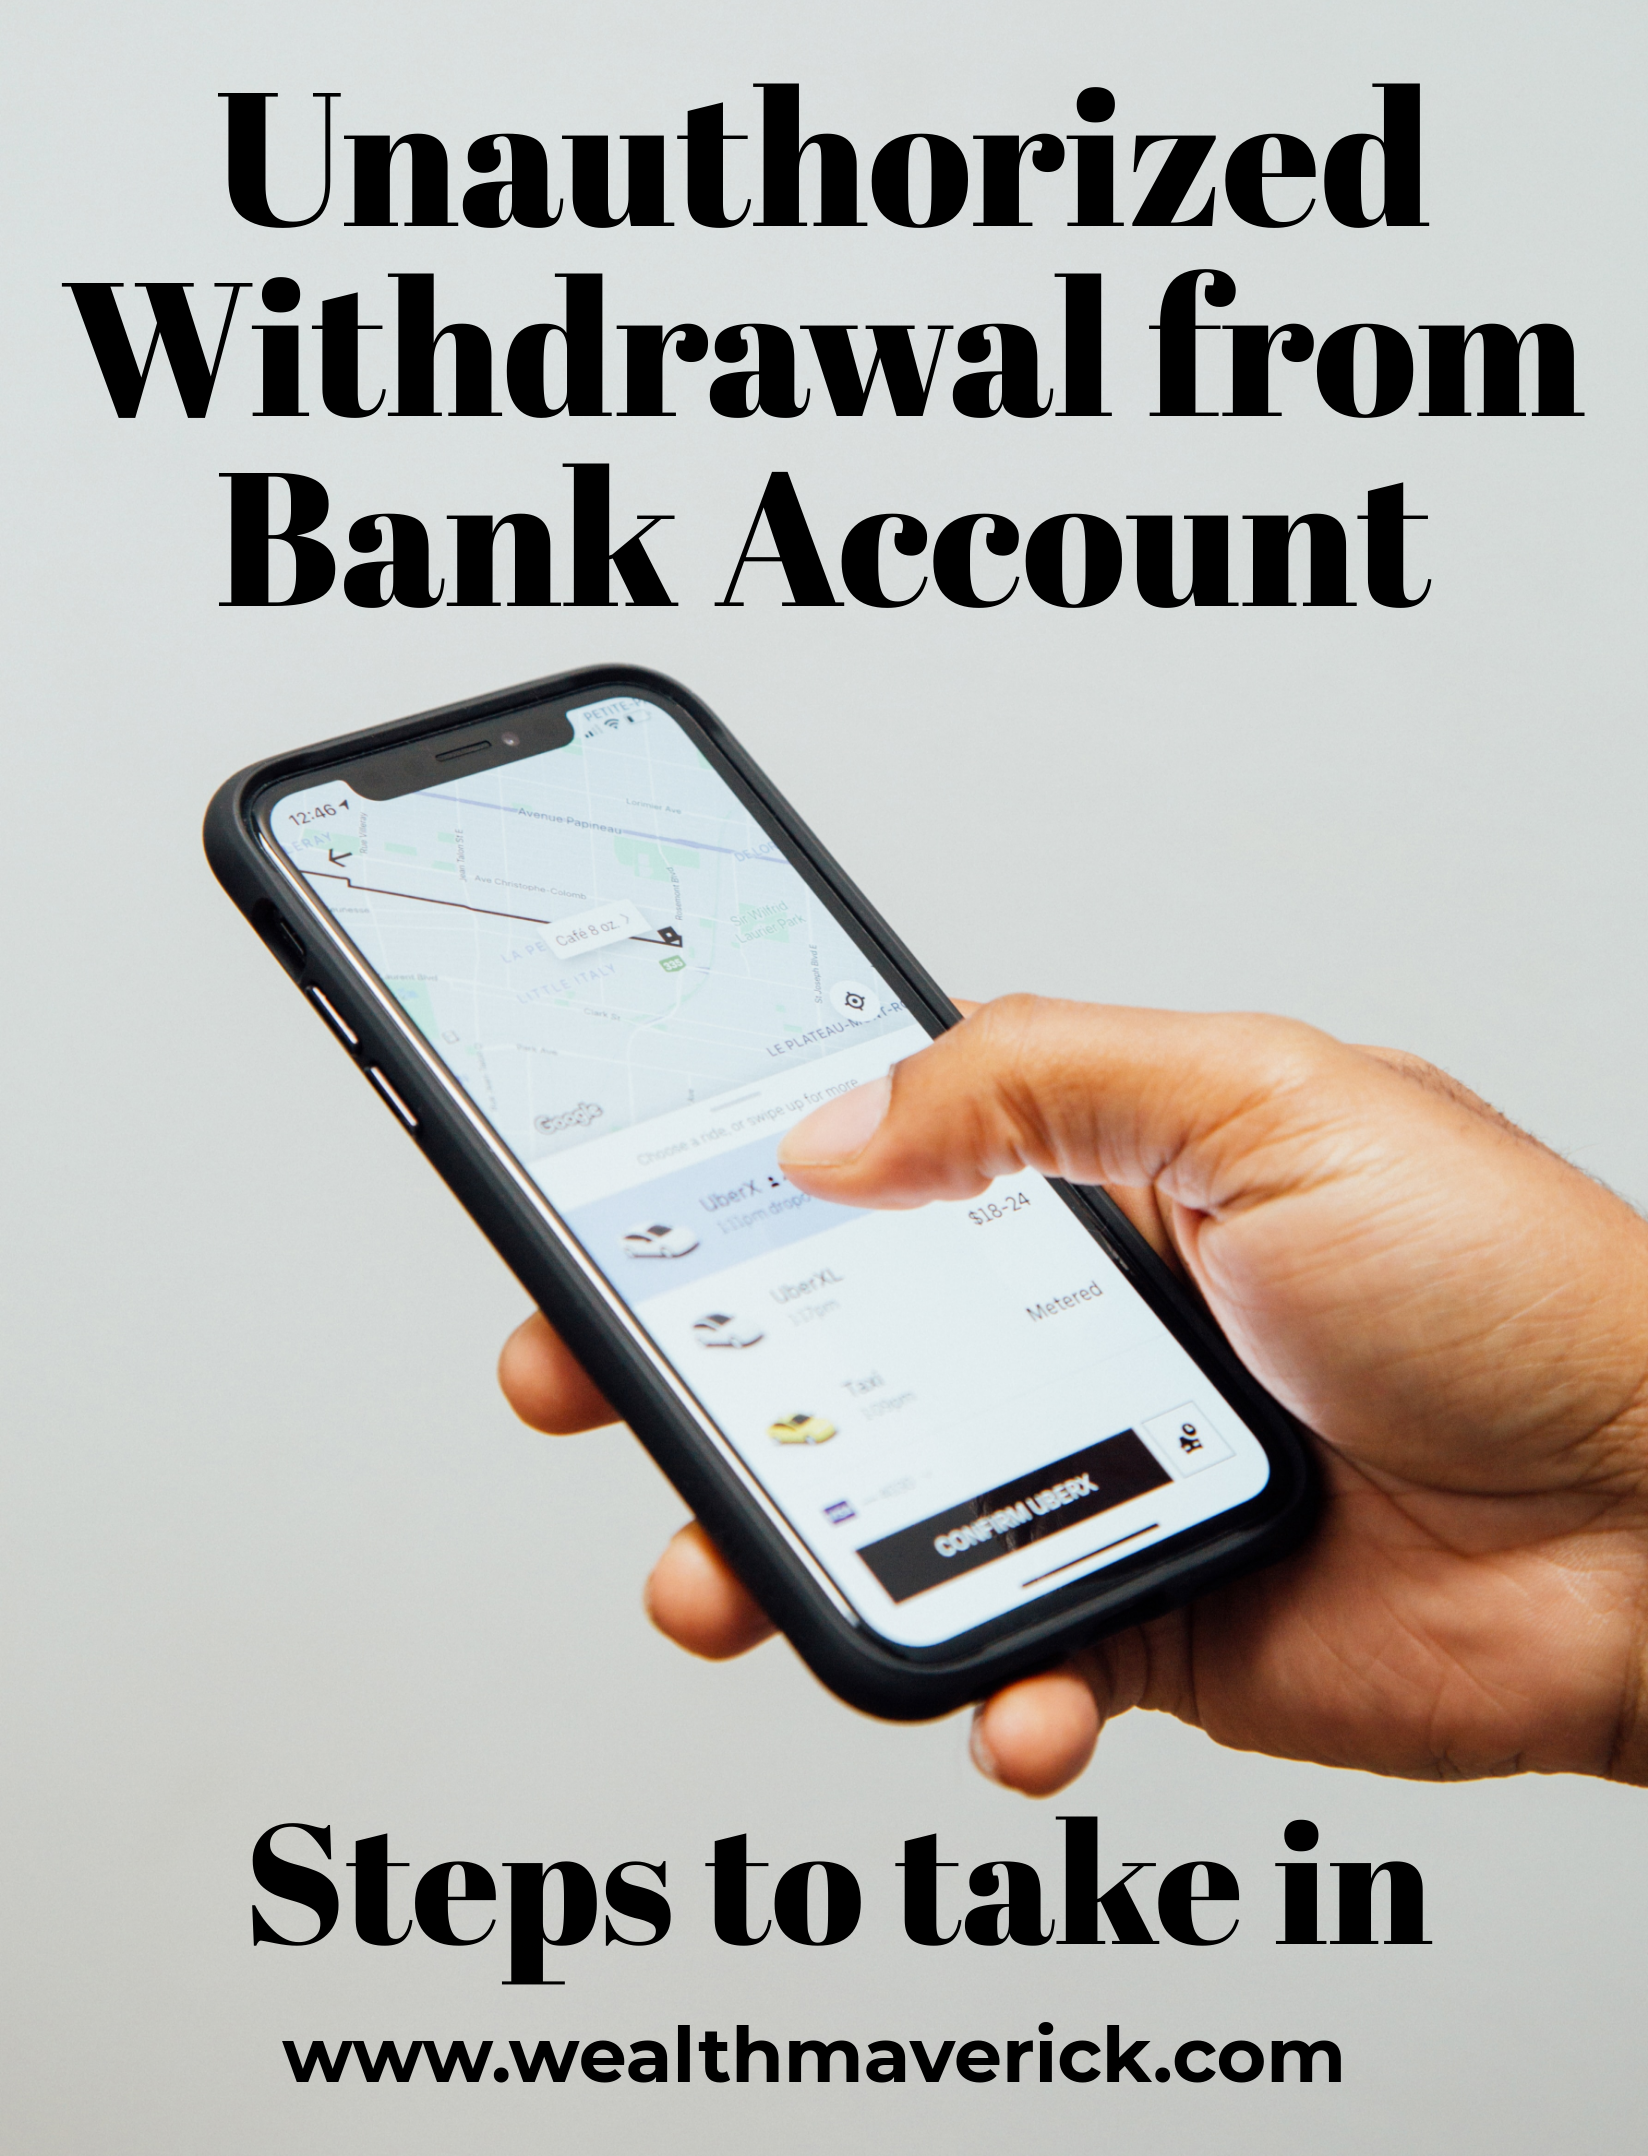 4 Steps To Take In Case Of Unauthorized Withdrawal From